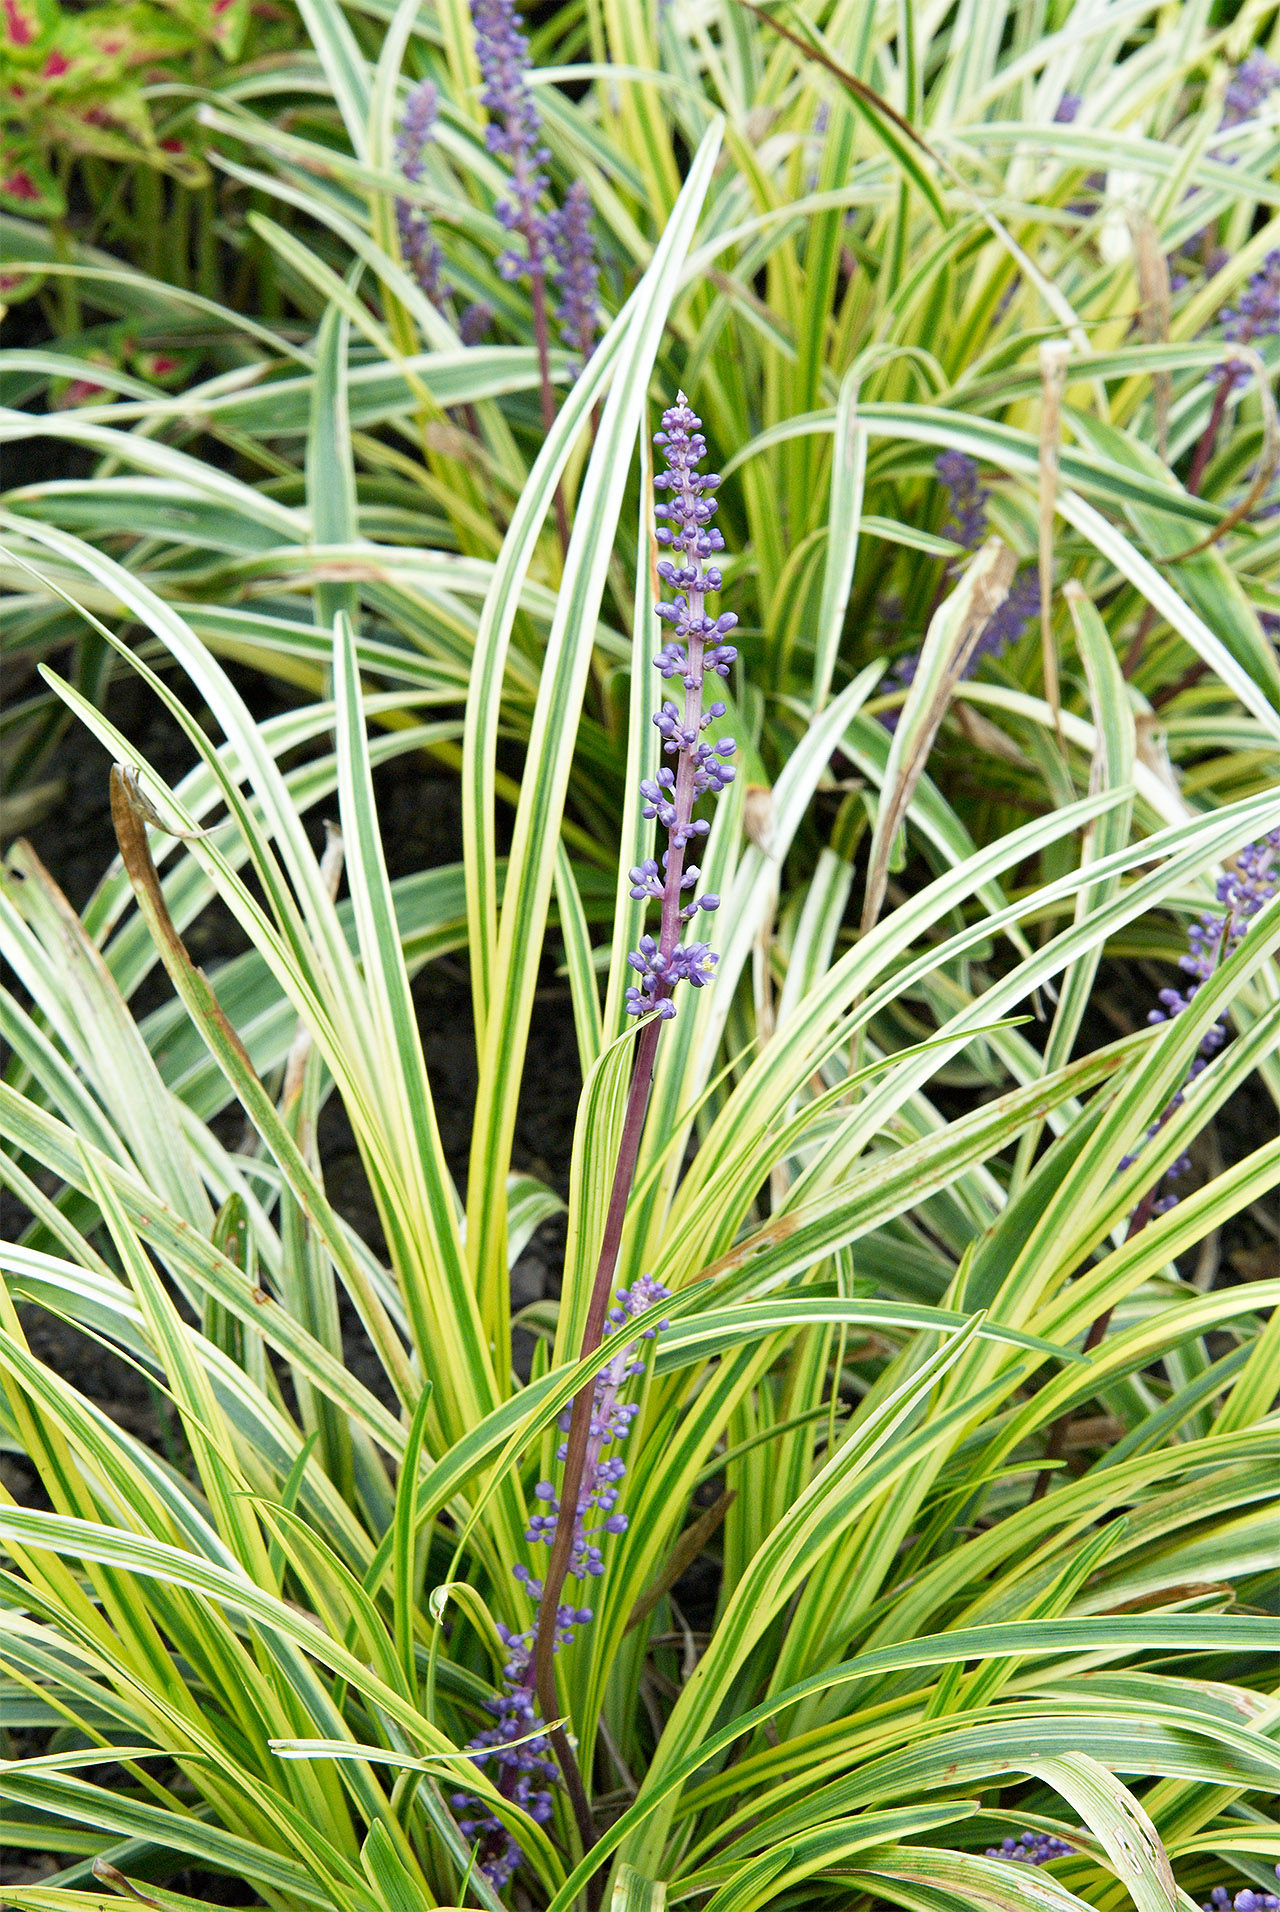 liriope purple flowers grass-like leaves